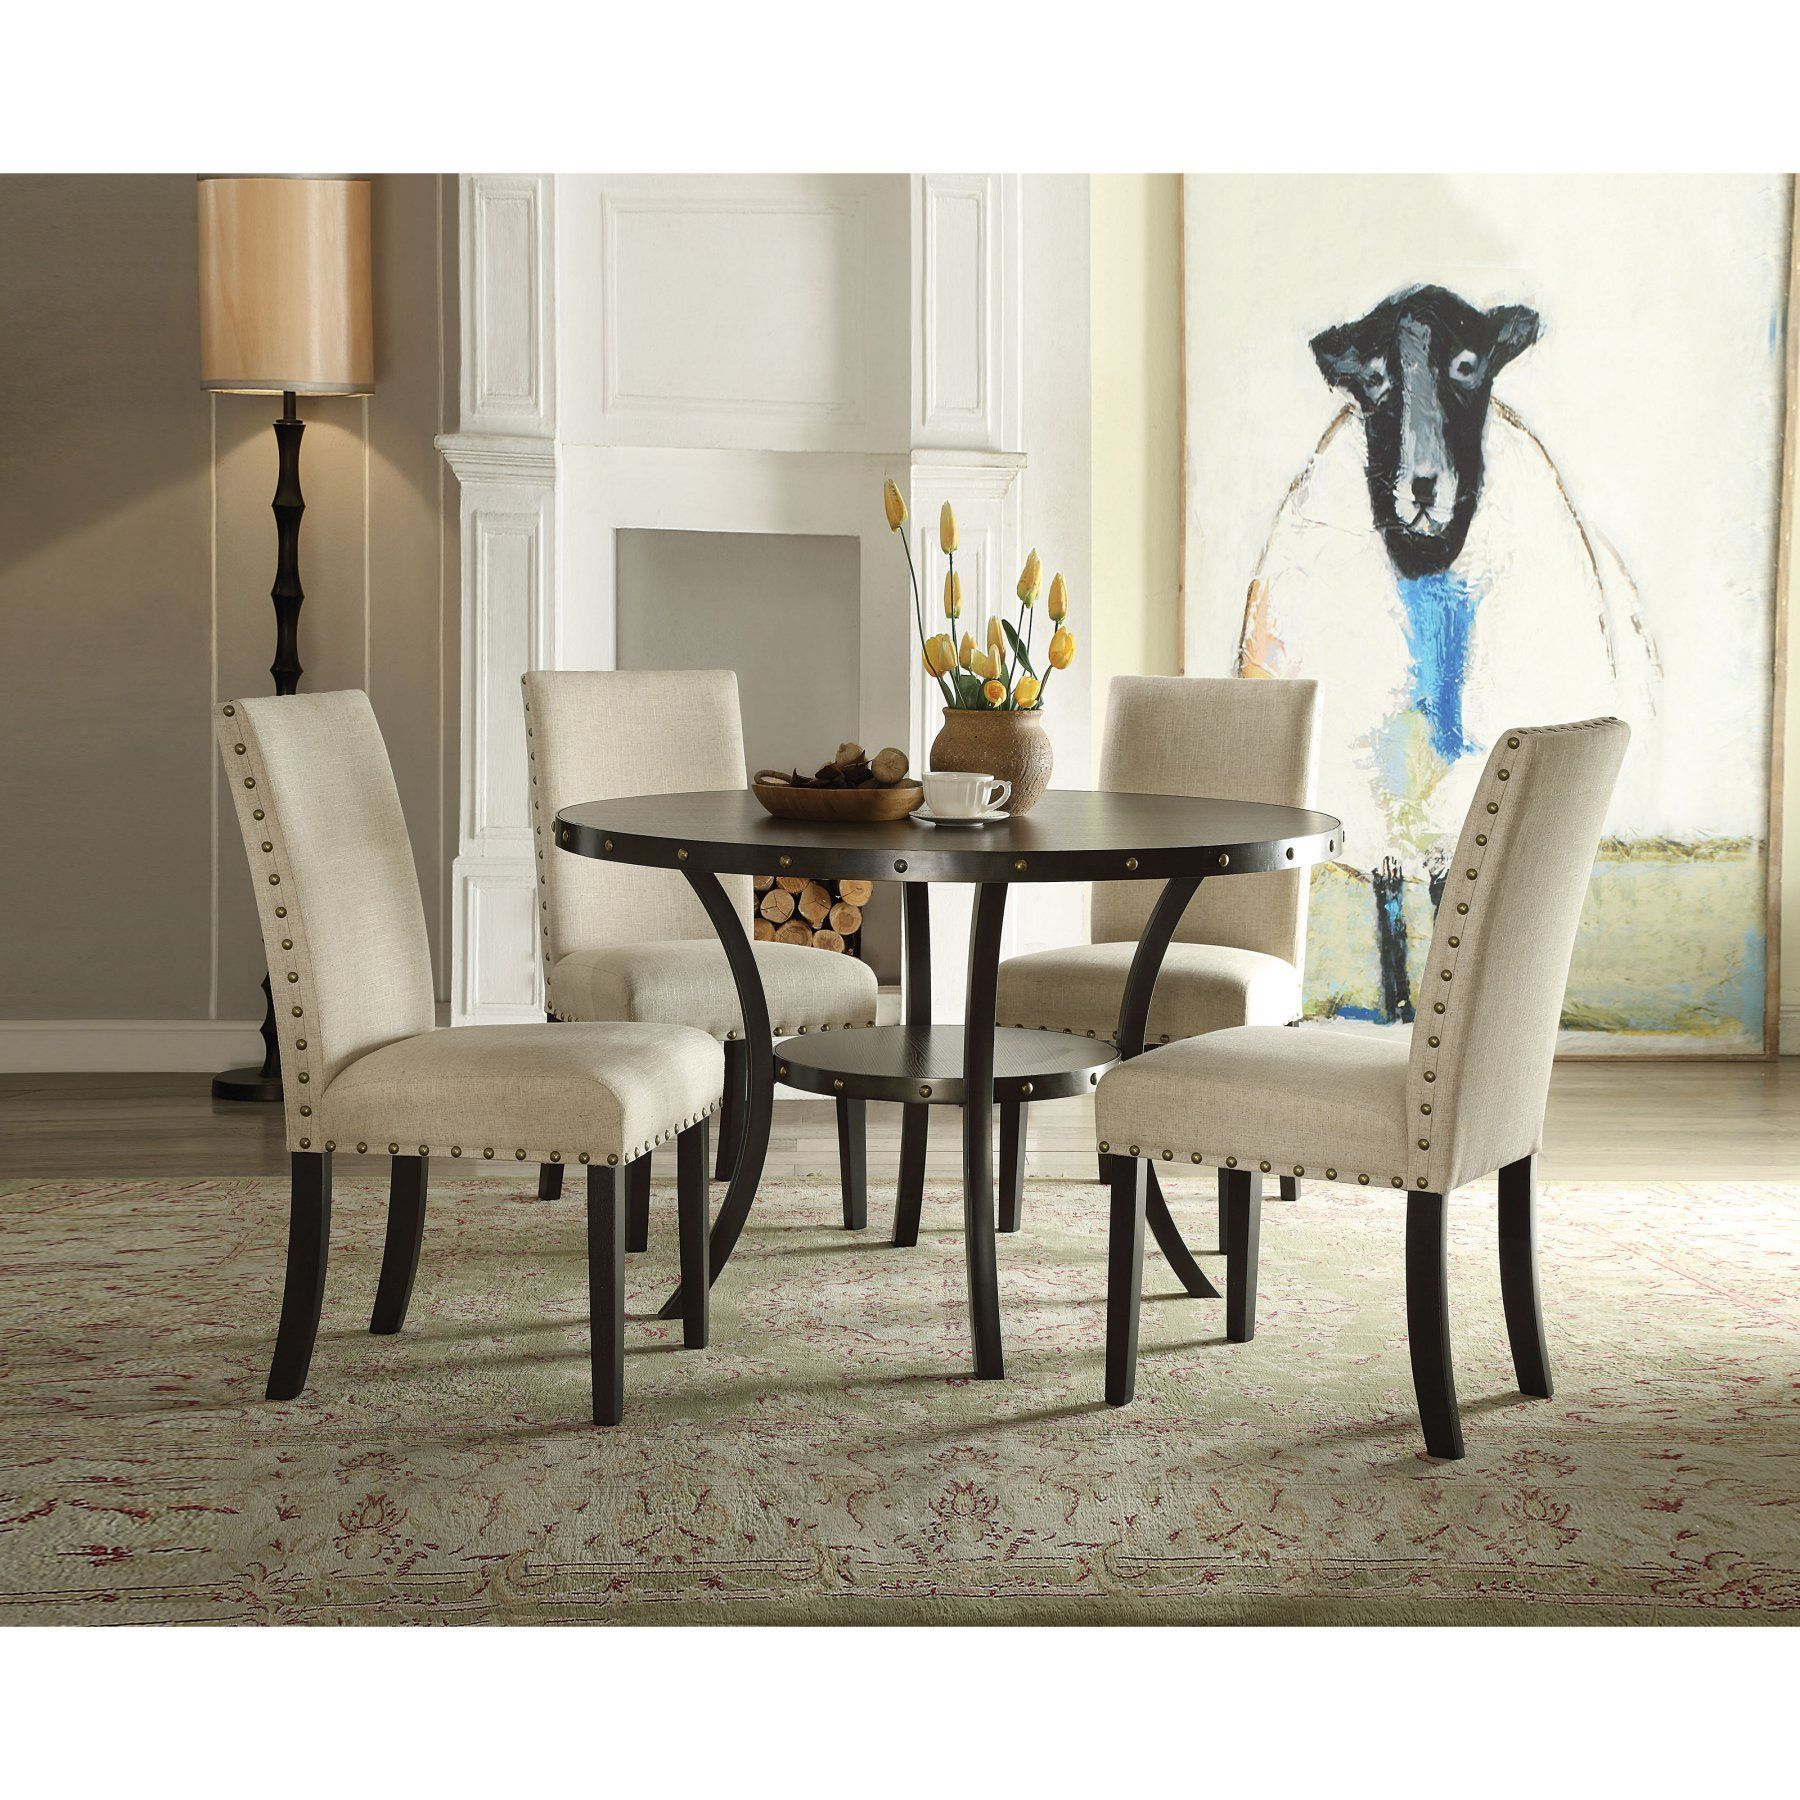 Acme Furniture Hadas 5 Piece Round Dining Table Set  Acm1751 Adorable Acme Dining Room Set Decorating Design